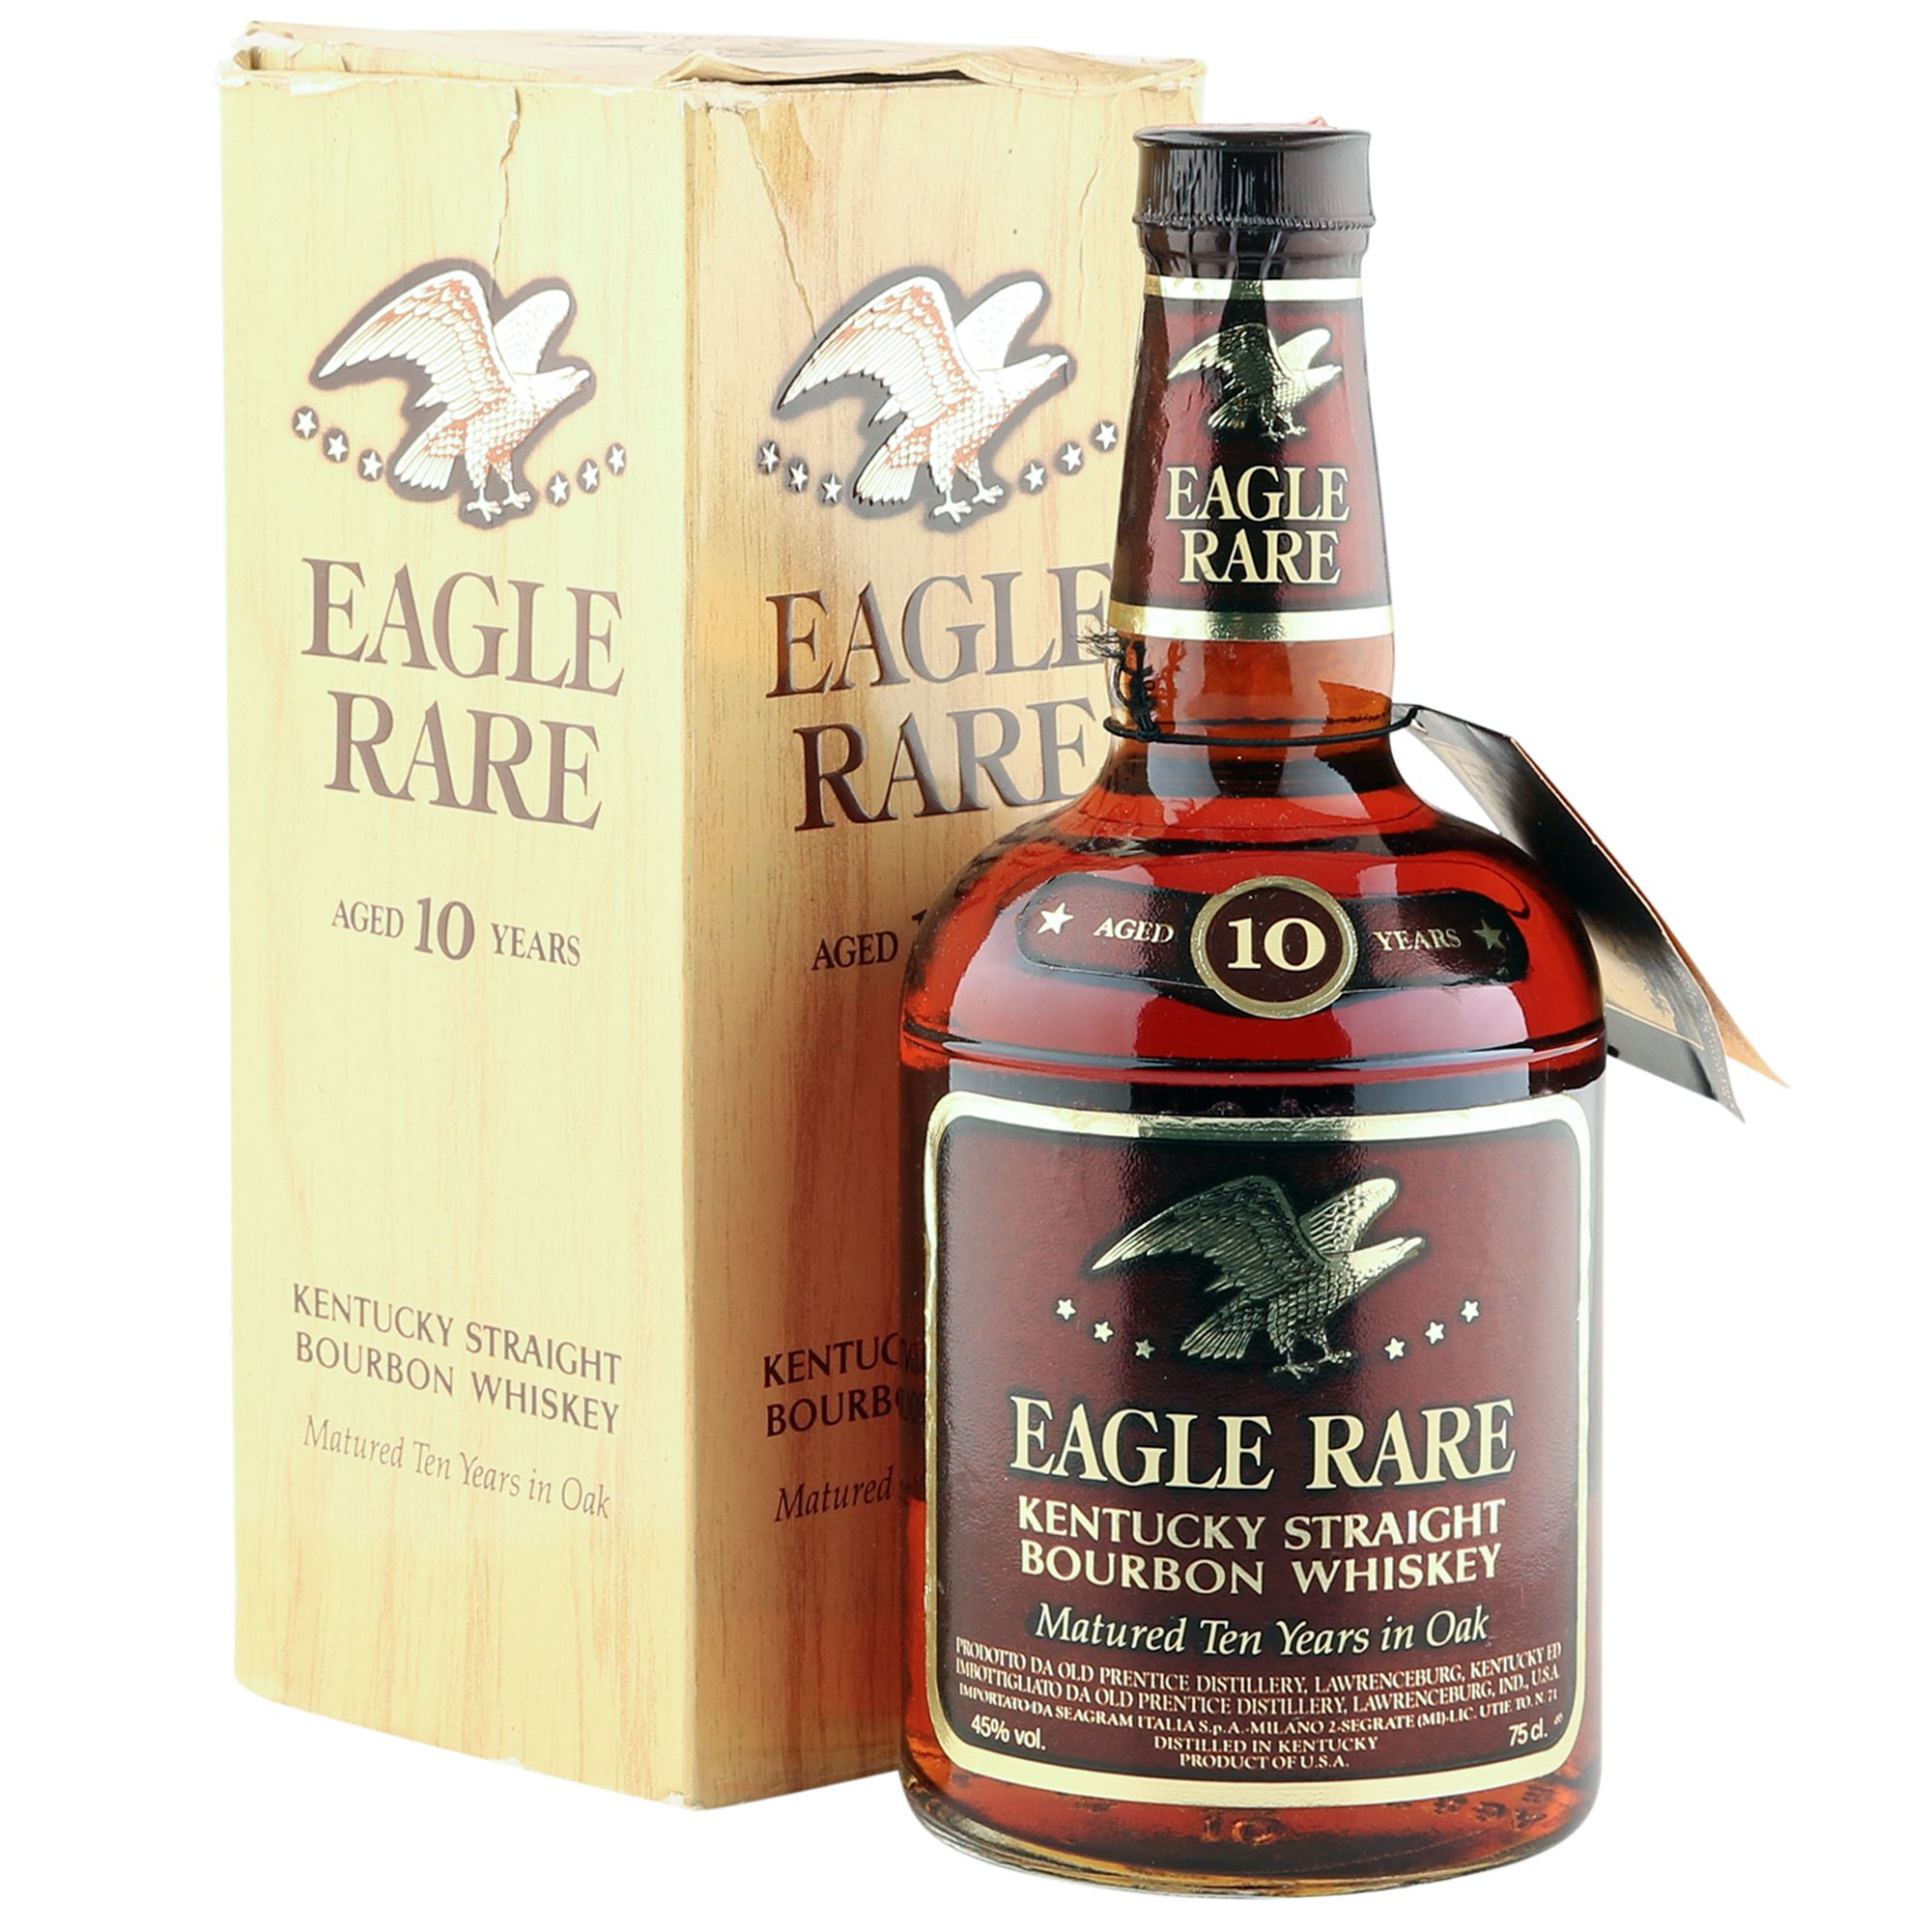 Eagle Rare 10 Year Old Bourbon Whiskey, Eighties | The Whisky Vault